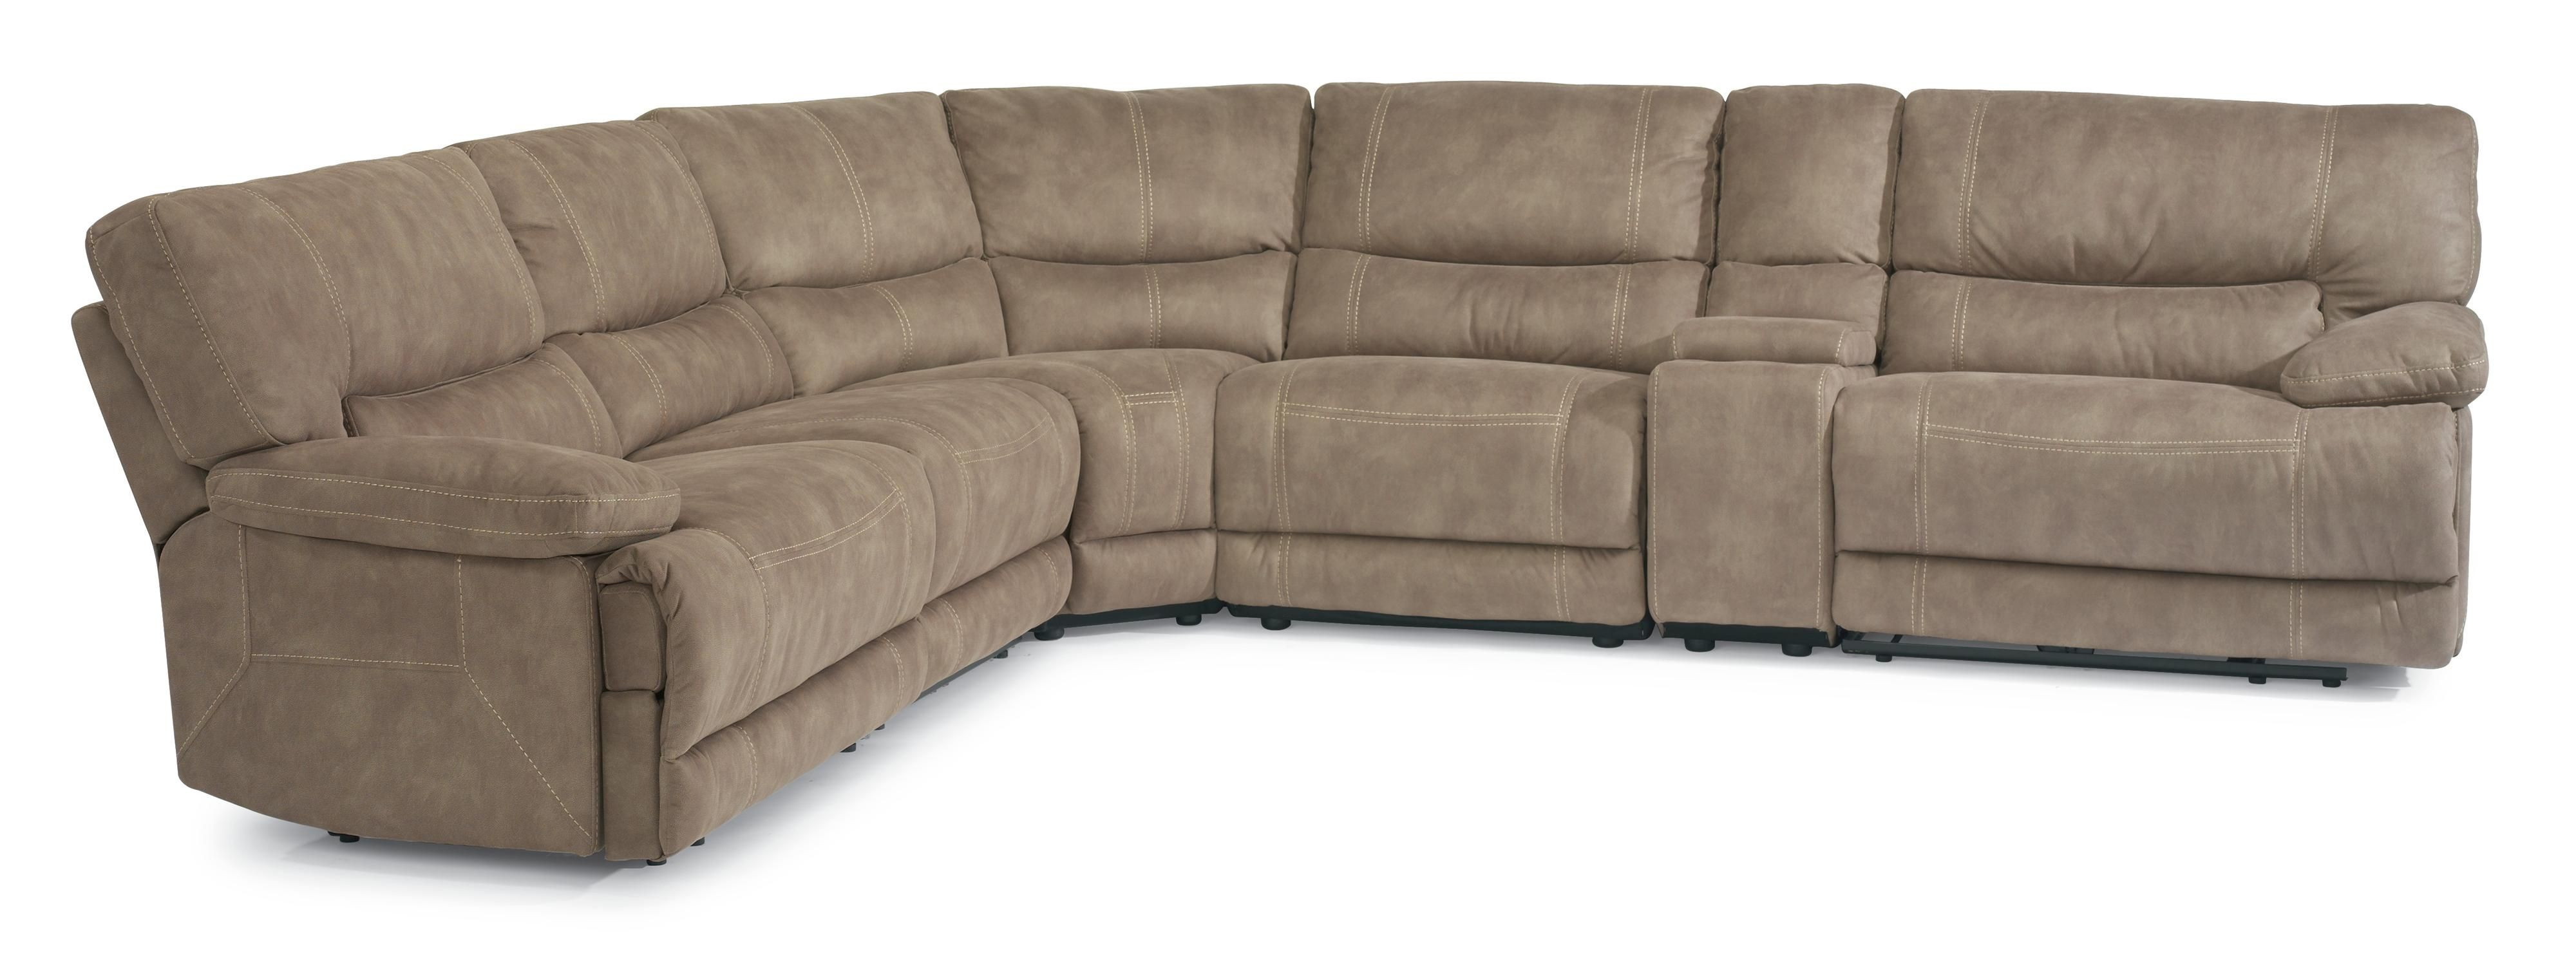 Latitudes #1206 - Brandon Reclining Motion Sofa by Flexsteel. Two shades of leather available - can be ordered with Power! | Leather Furniture | Pinterest ...  sc 1 st  Pinterest & Latitudes #1206 - Brandon Reclining Motion Sofa by Flexsteel. Two ... islam-shia.org